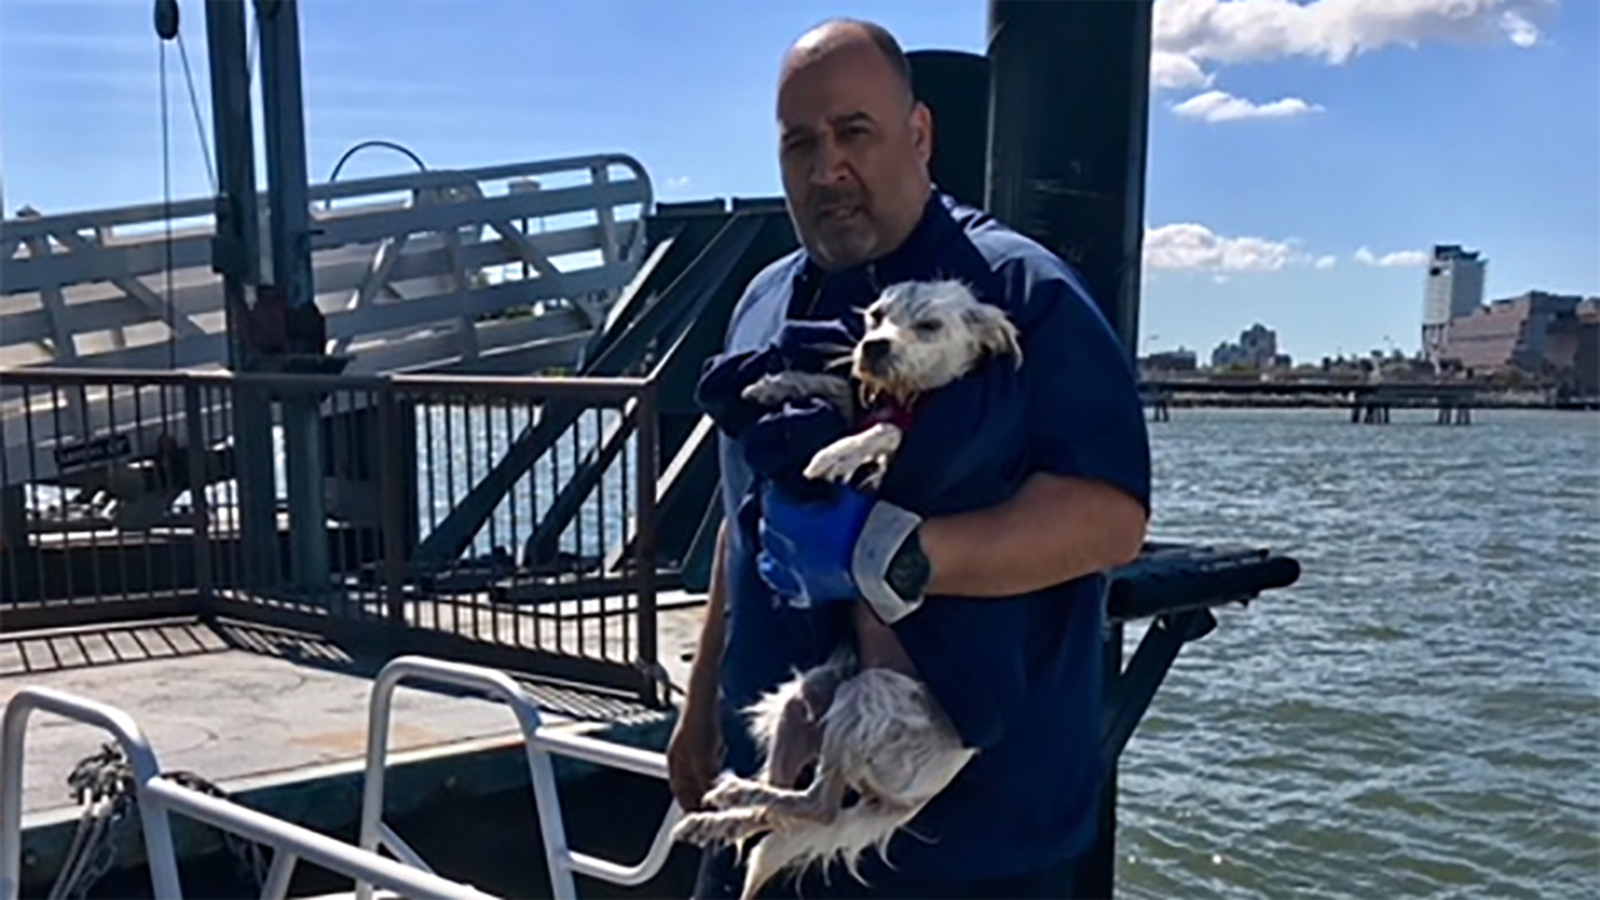 NYPD saves dog swept away by tide in East River near Brooklyn